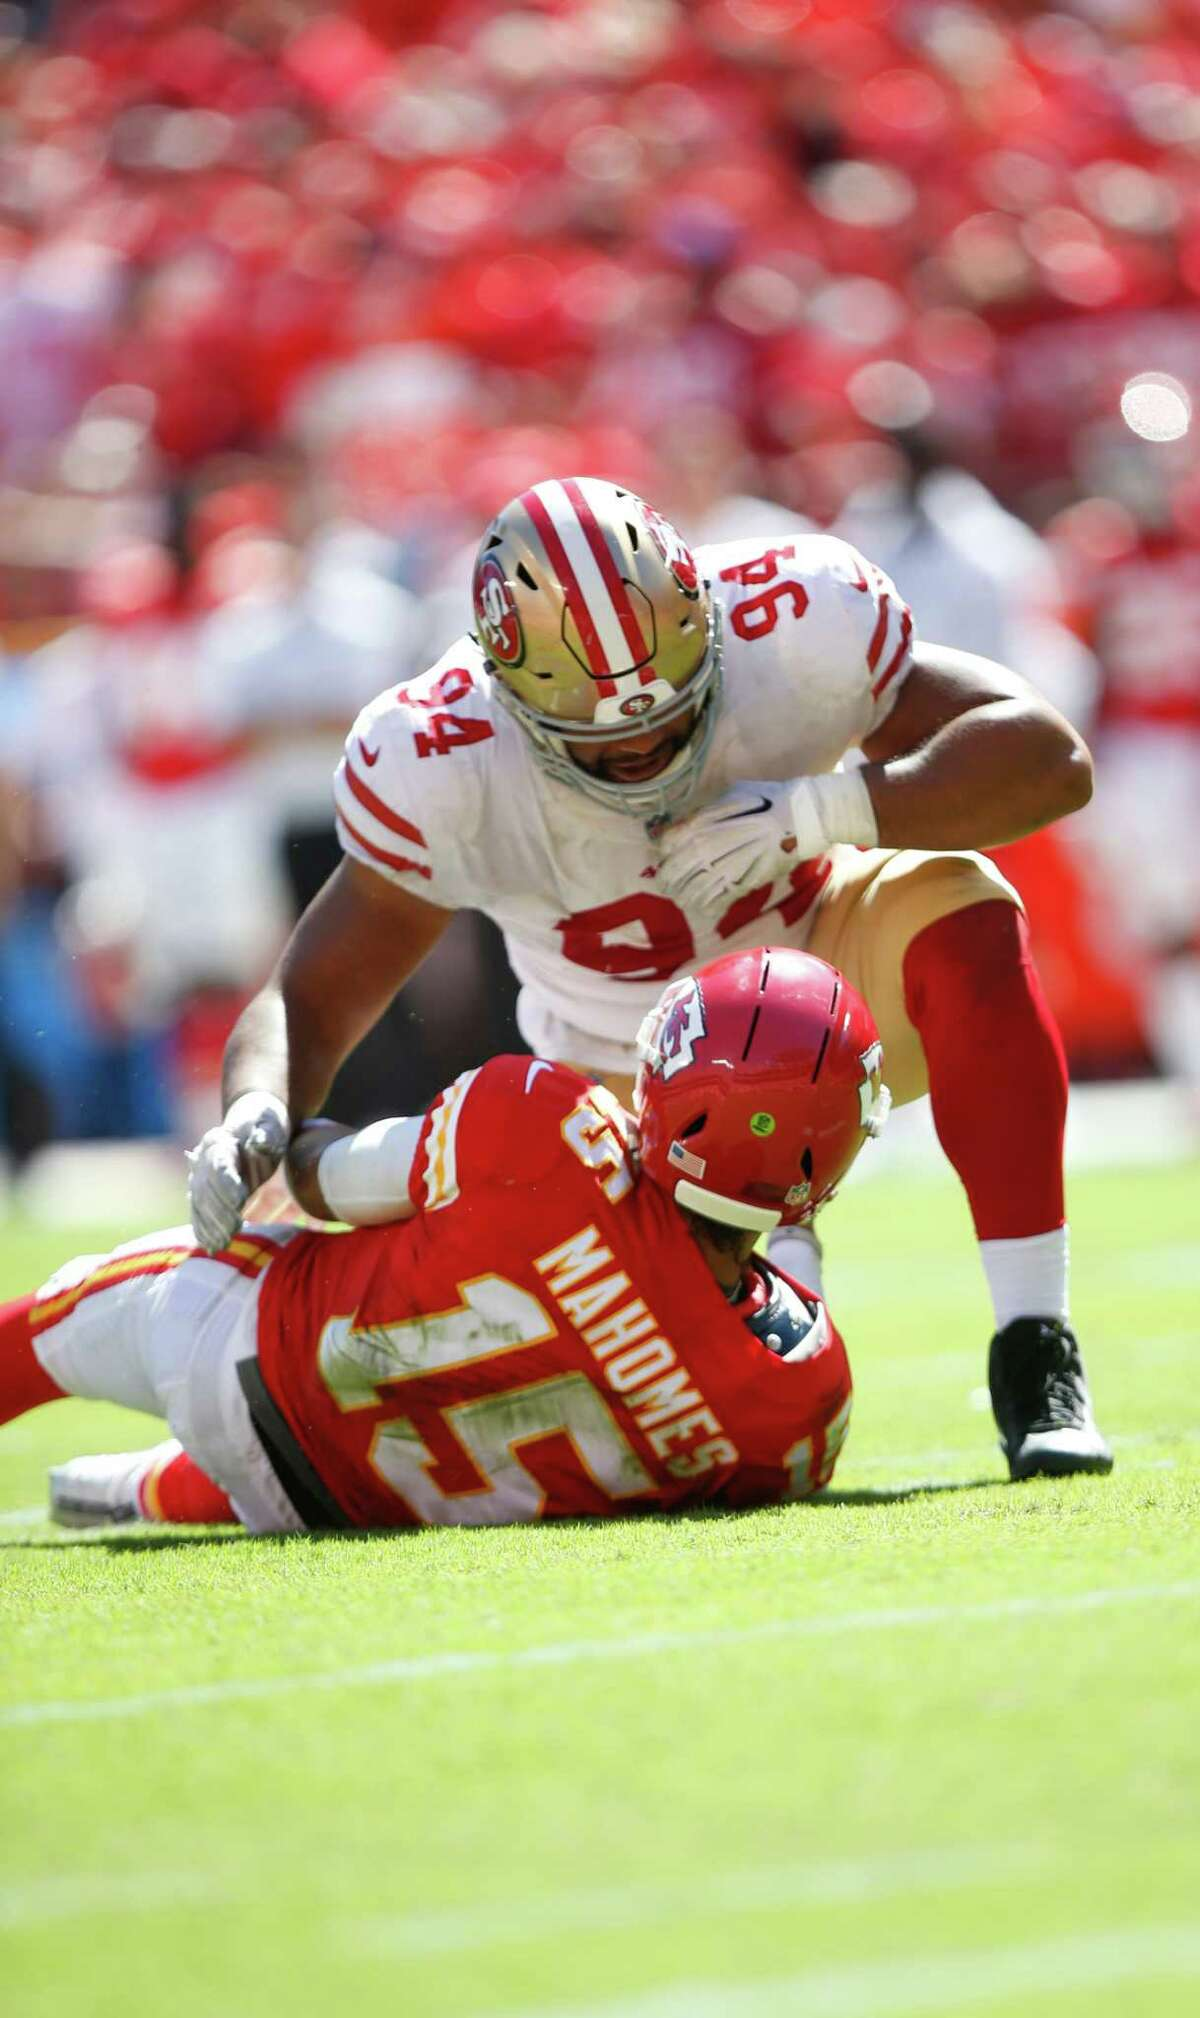 KANSAS CITY, MO - SEPTEMBER 23: Solomon Thomas #94 of the San Francisco 49ers looks down on Patrick Mahomes #15 of the Kansas City Chiefs after knocking him down during the game at Arrowhead Stadium on September 23, 2018 in Kansas City, Missouri. The Chiefs defeated the 49ers 38-27. (Photo by Michael Zagaris/San Francisco 49ers/Getty Images)